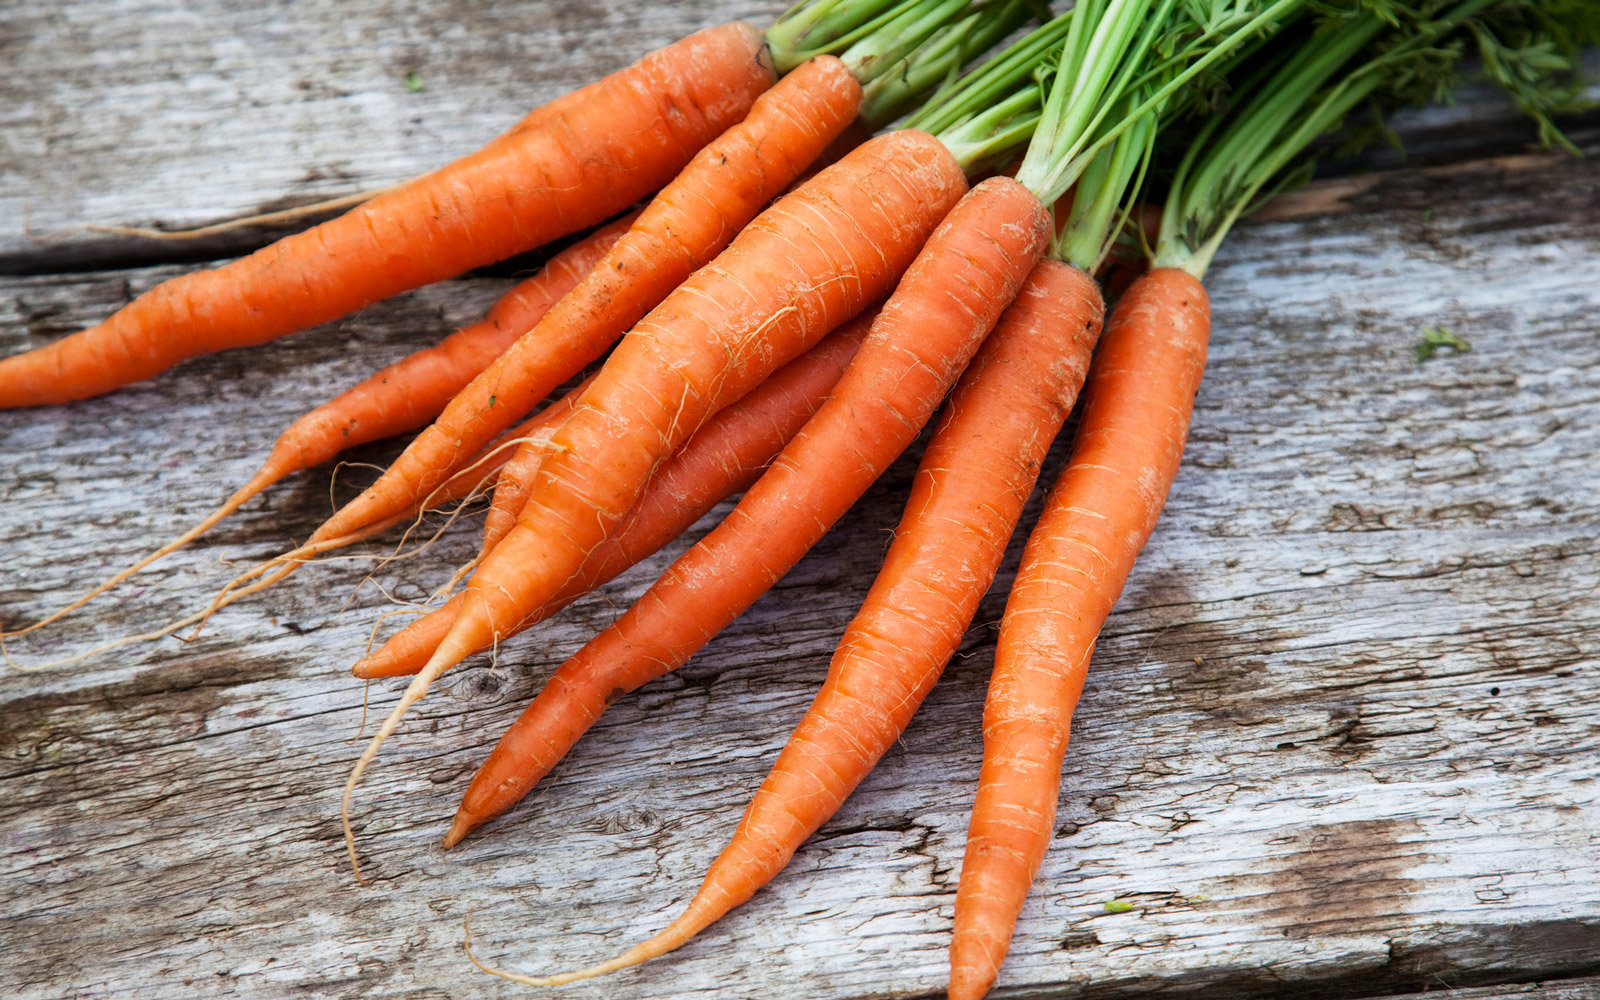 A bunch of freshly picked organic carrots on rough wooden surface